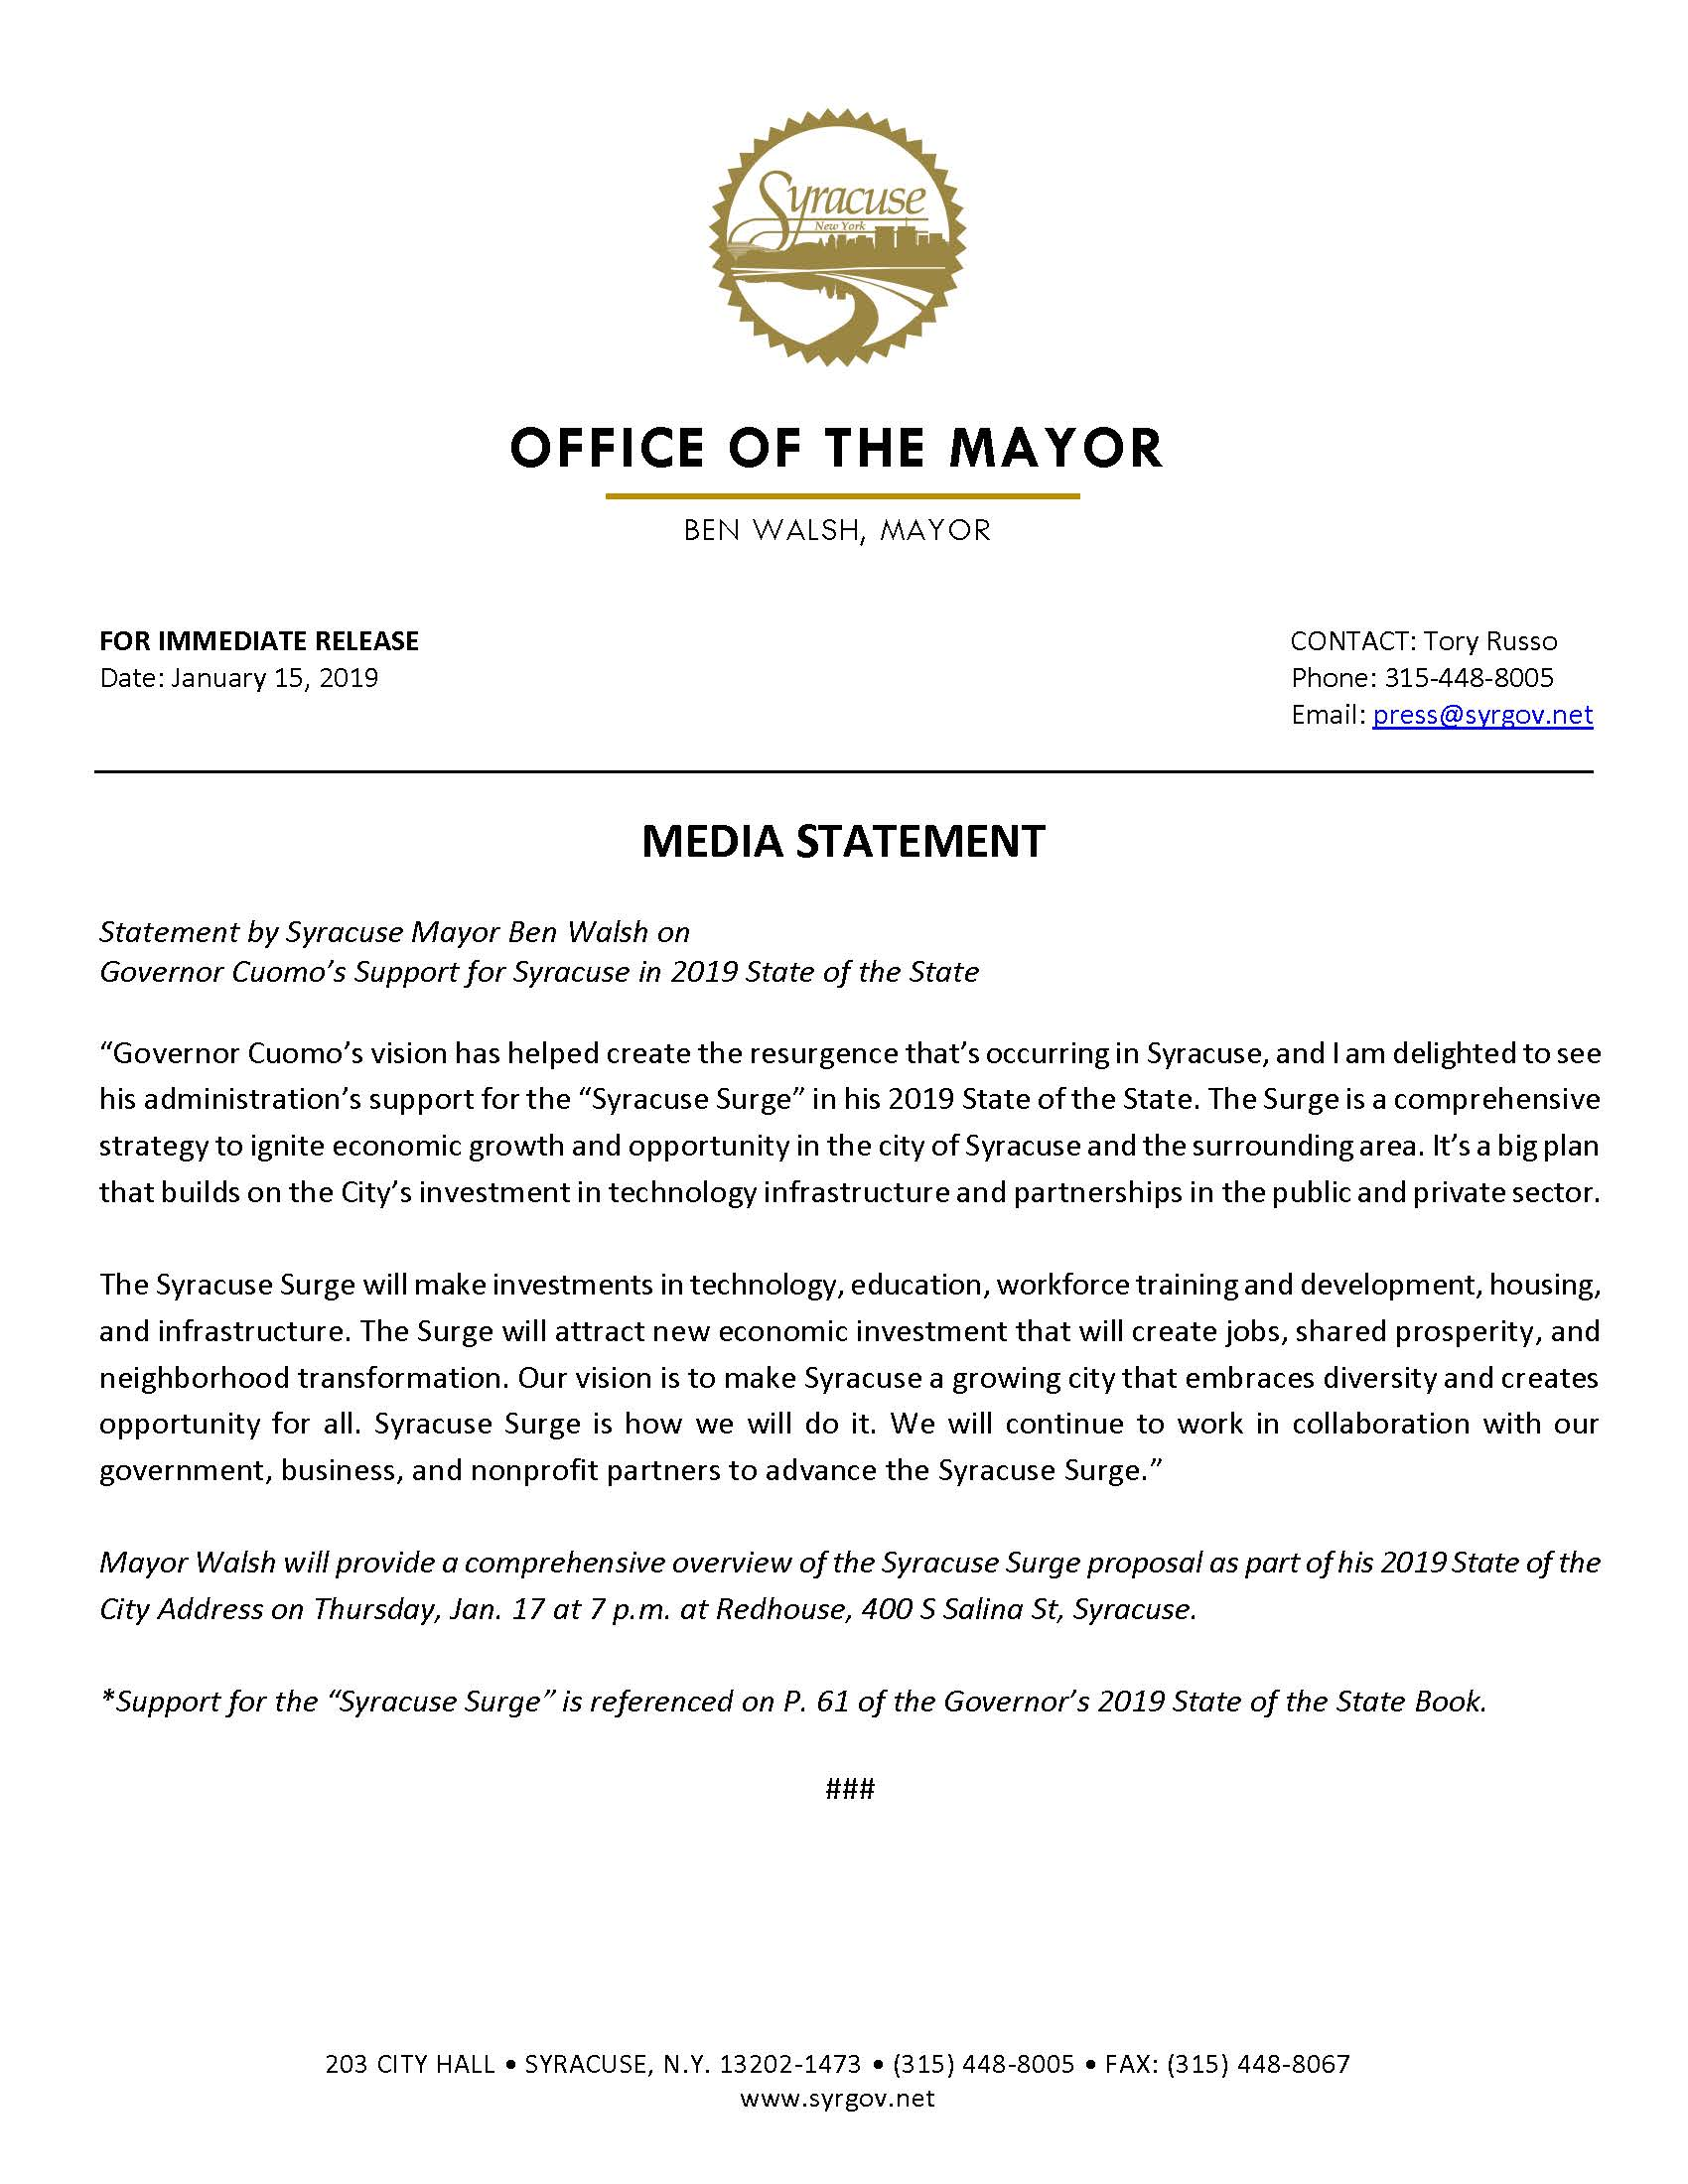 2019 01 15 MEDIA STATEMENT Syracuse Mayor Ben Walsh on Governor Cuomo's State of the State.jpg